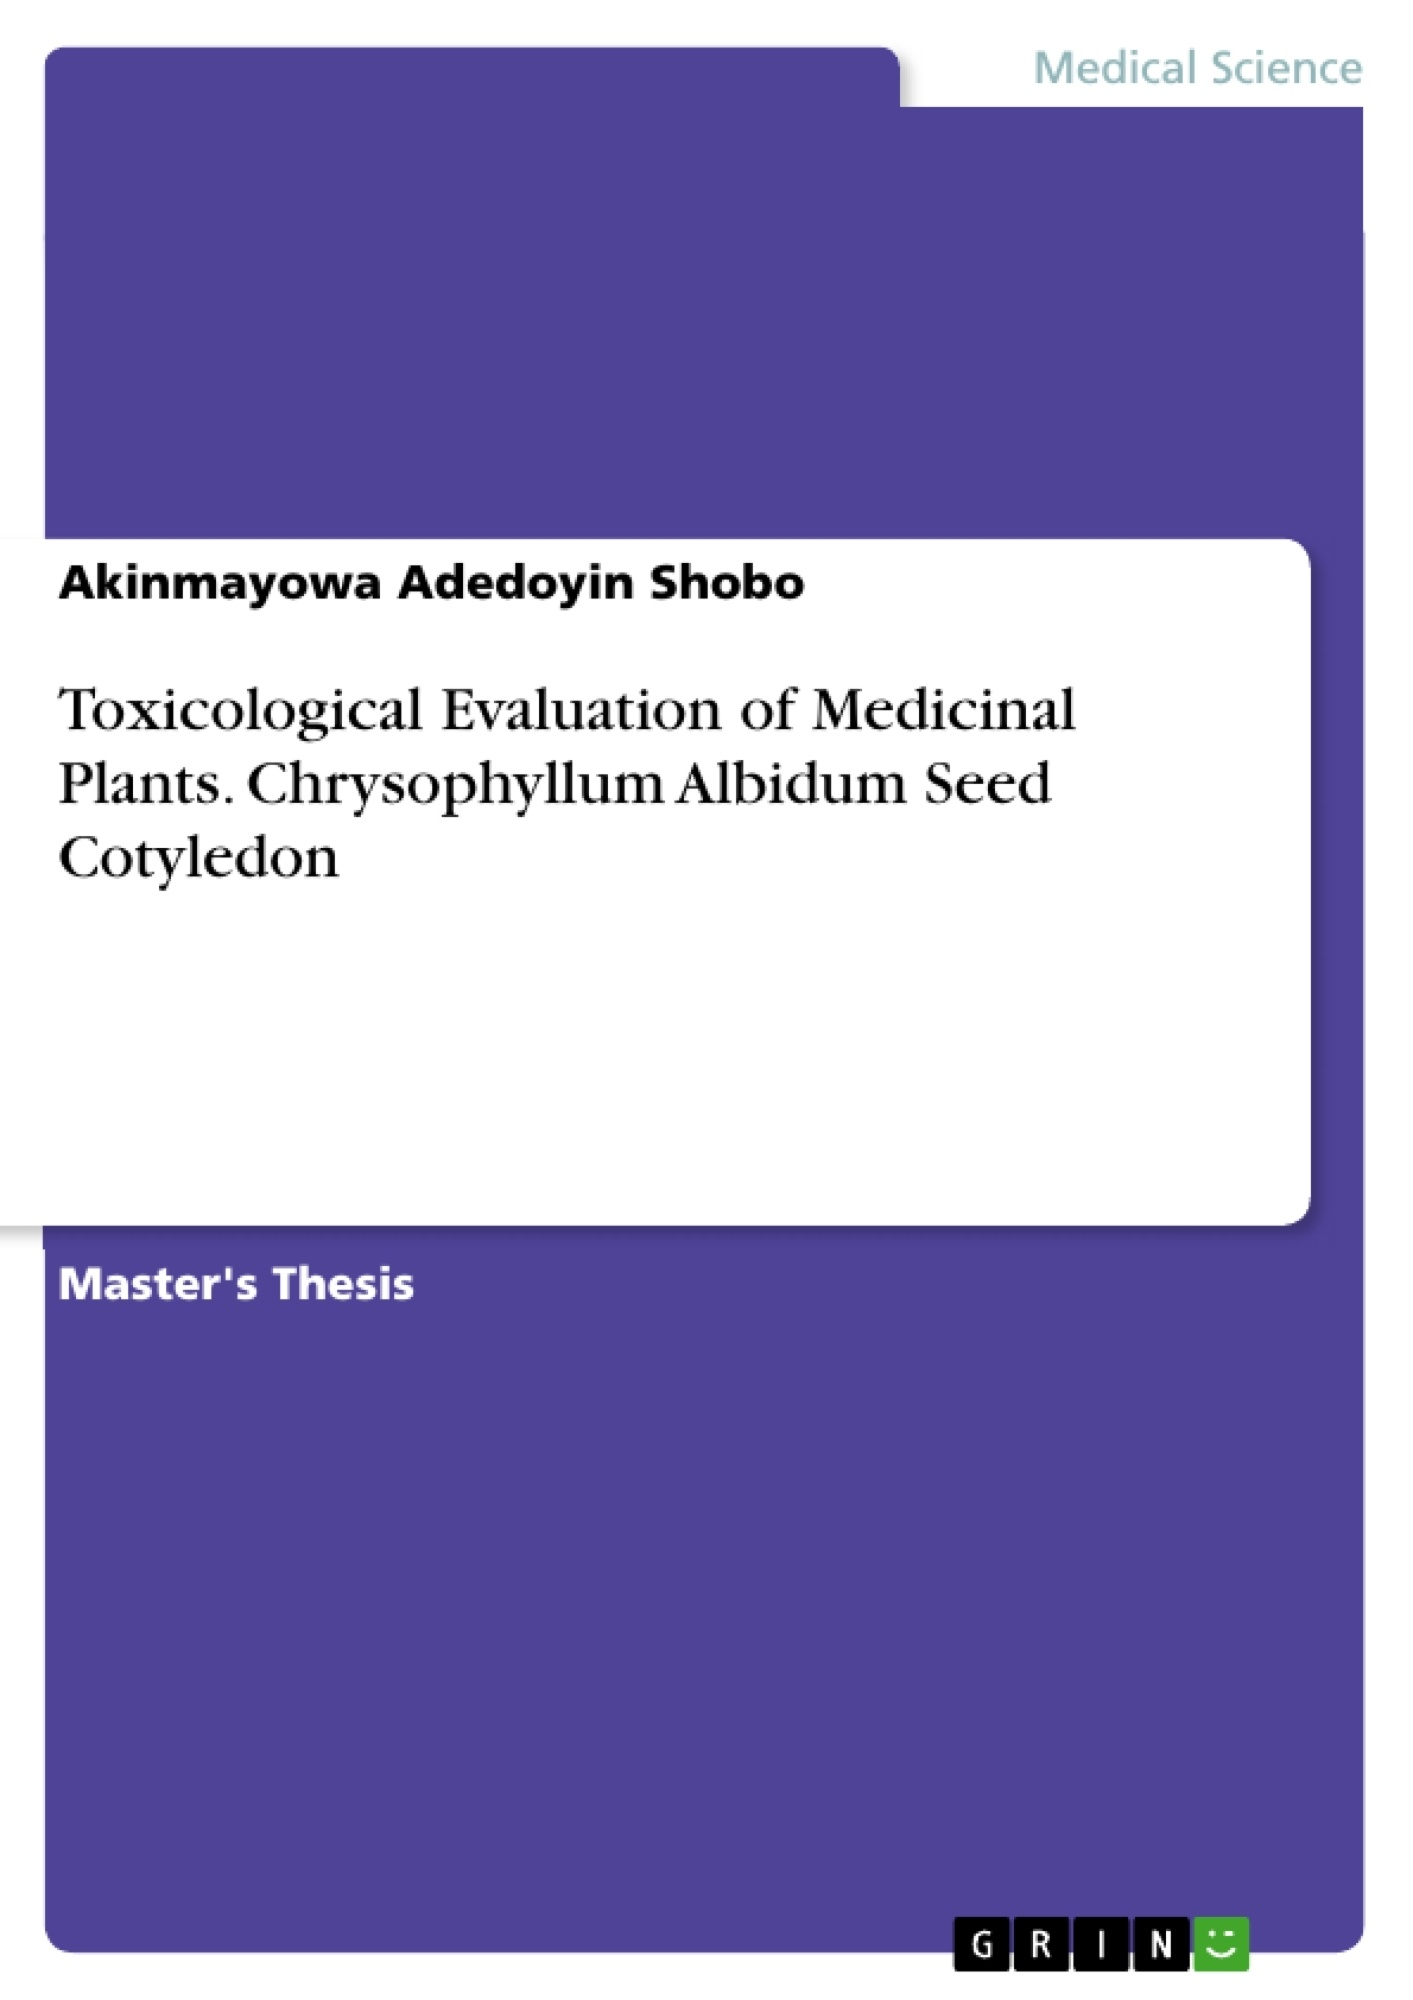 Title: Toxicological Evaluation of Medicinal Plants. Chrysophyllum Albidum Seed Cotyledon